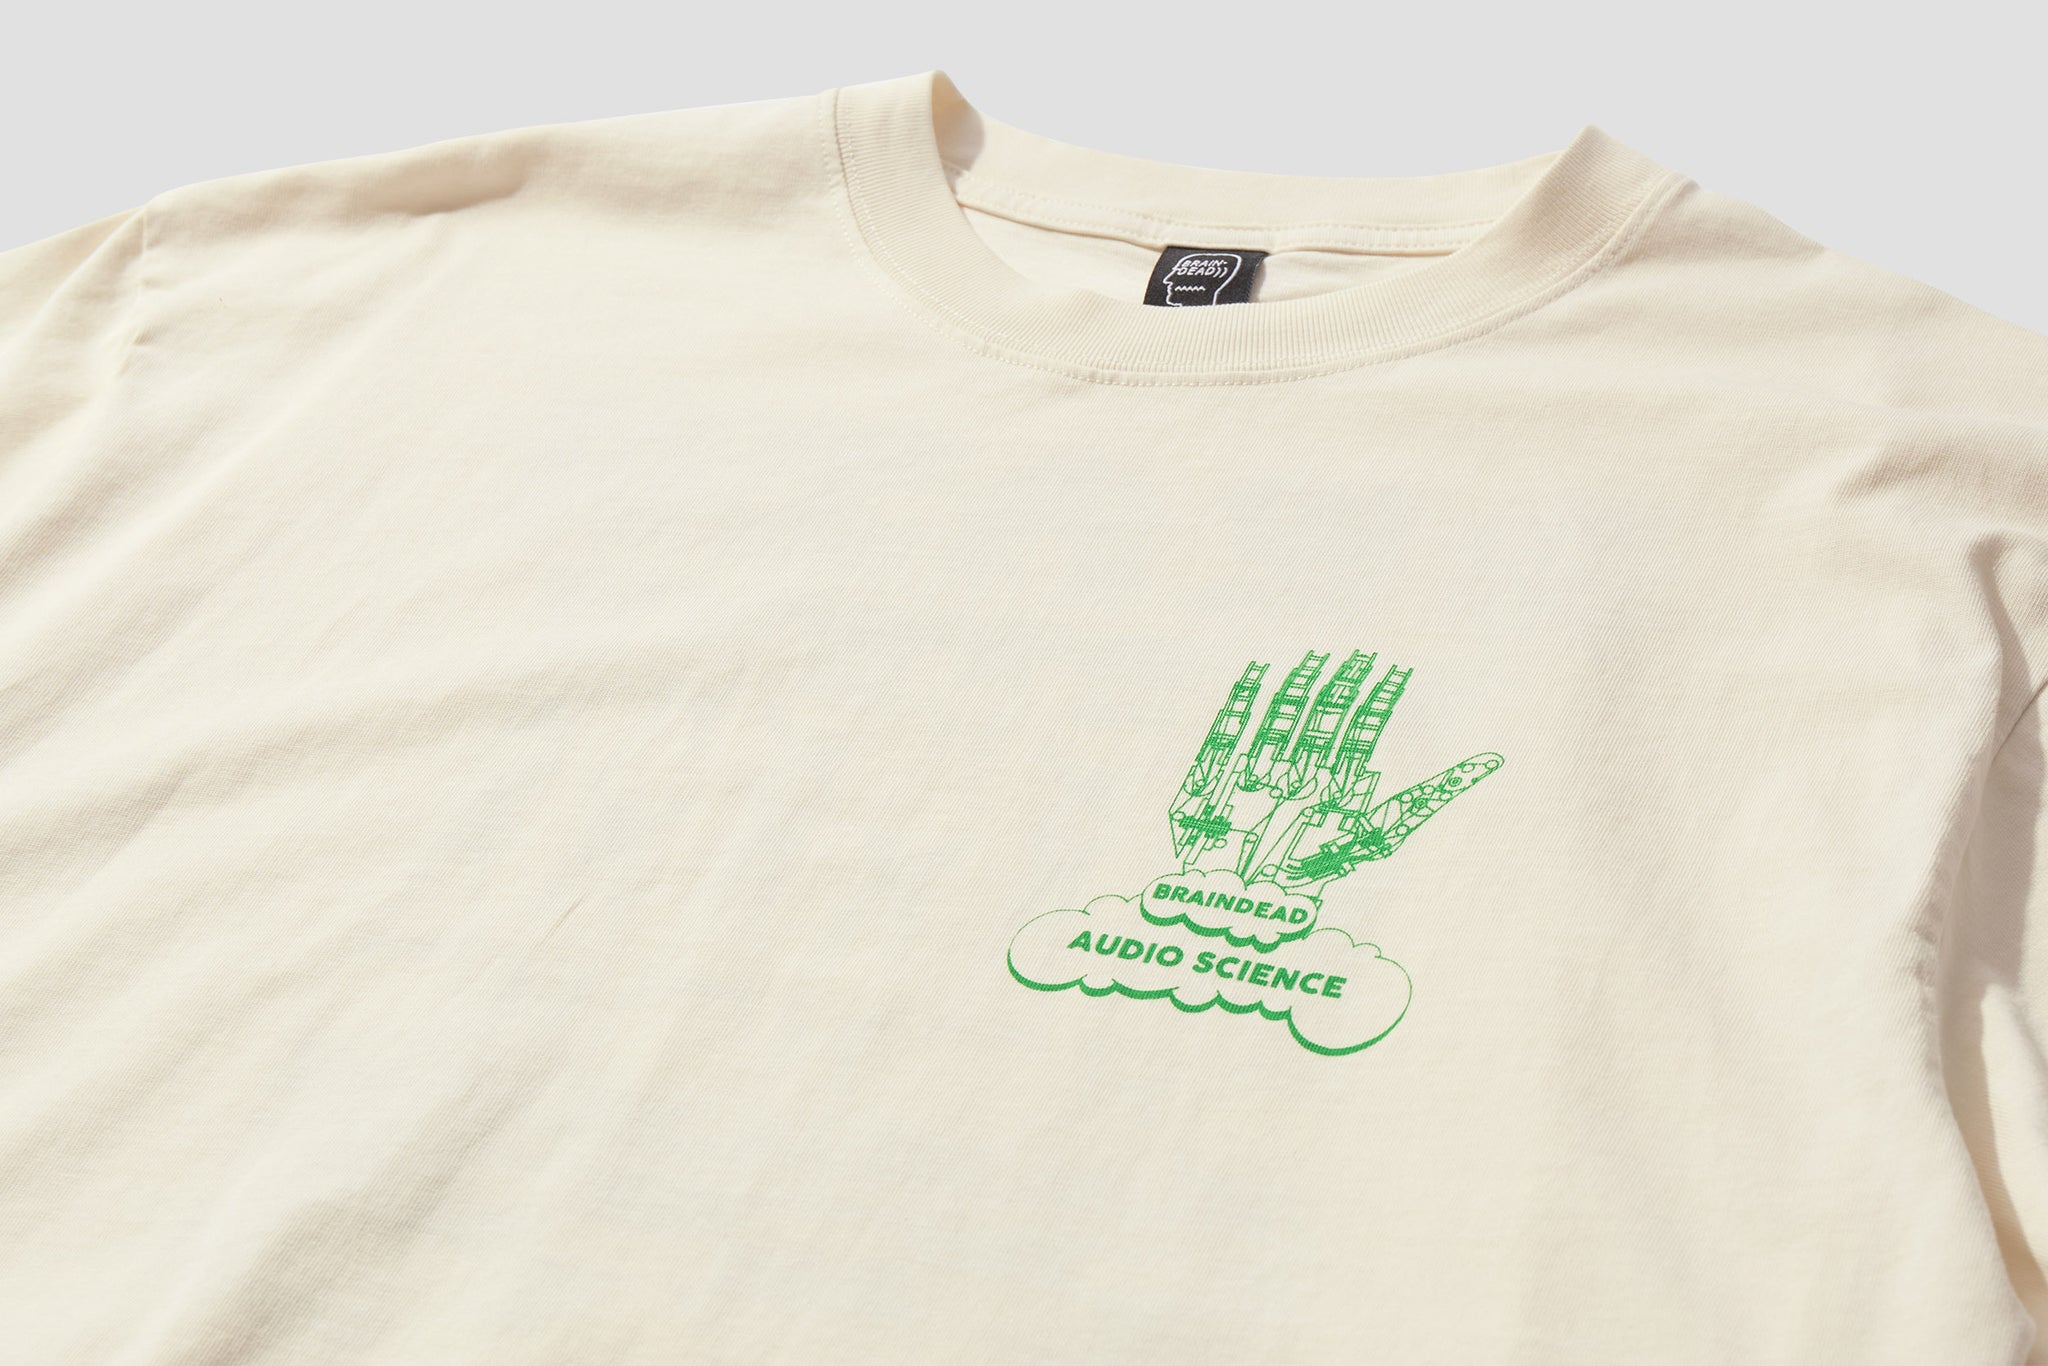 AUDIO SCIENCE T-SHIRT BDP21T00001616WH02 Off white